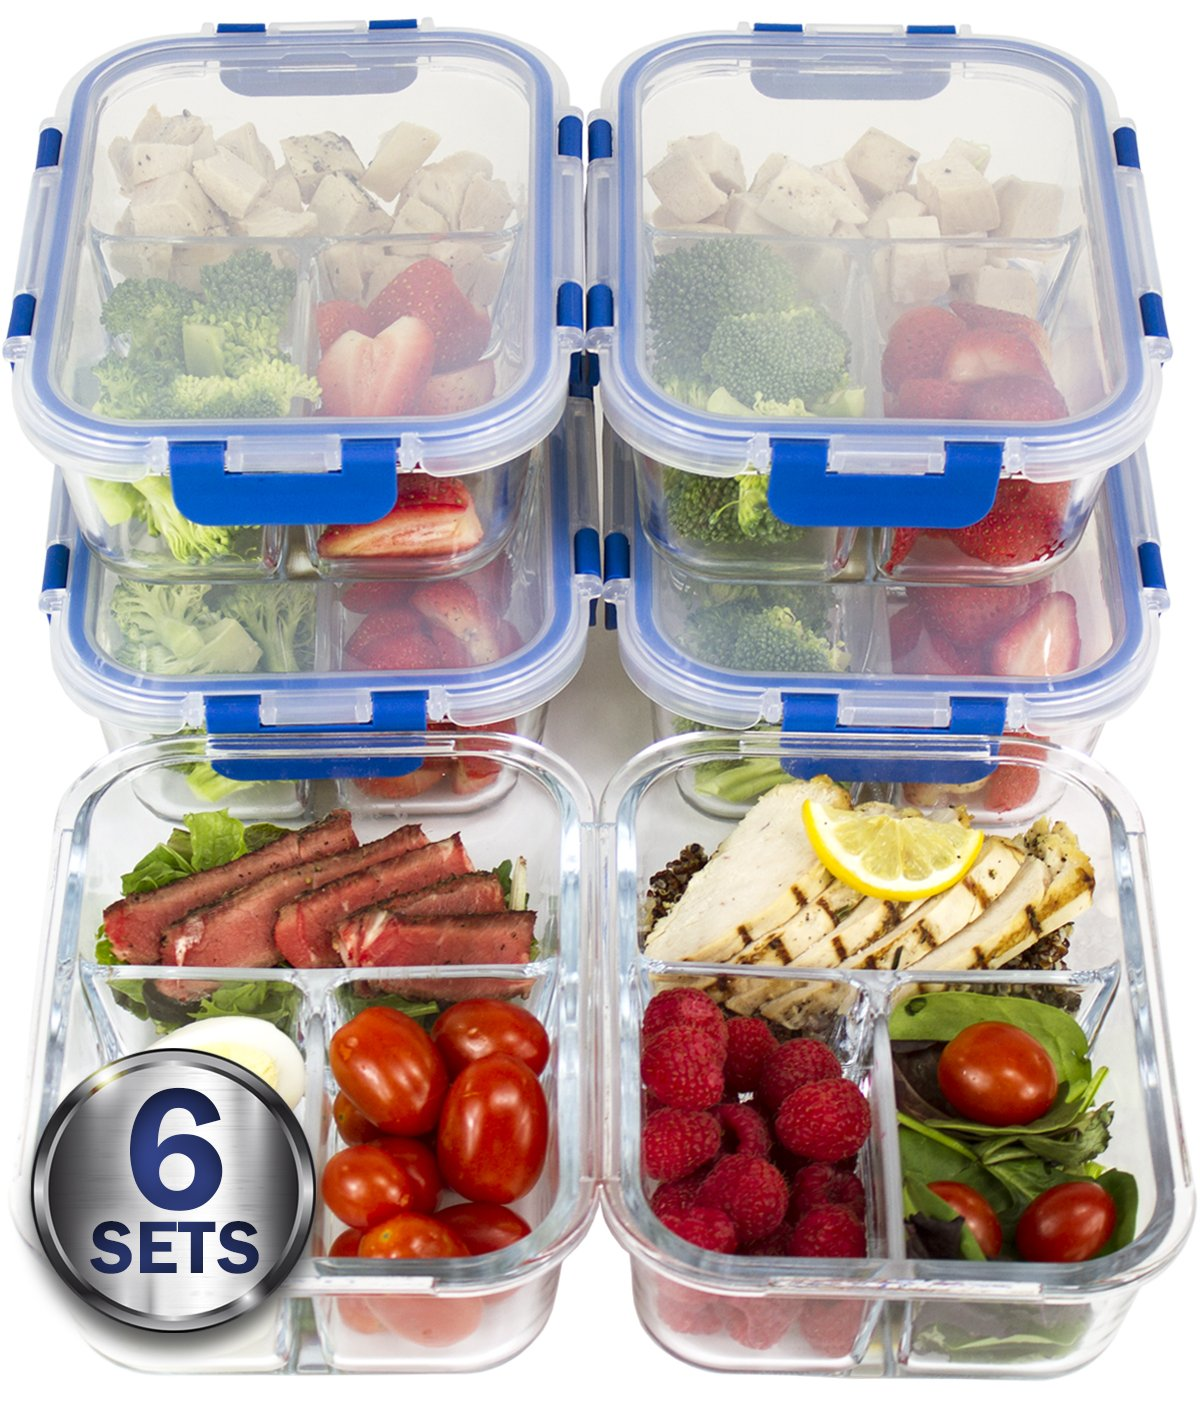 [LIFETIME LIDS 6 PACK] LARGE Premium 6 Sets 3 Compartment Glass Meal Prep Containers 3 Compartment with Snap Locking Lids, BPA-Free, Microwave, Oven, Freezer, Dishwasher Safe (4.5 Cup, 36 Oz,) by Misc Home